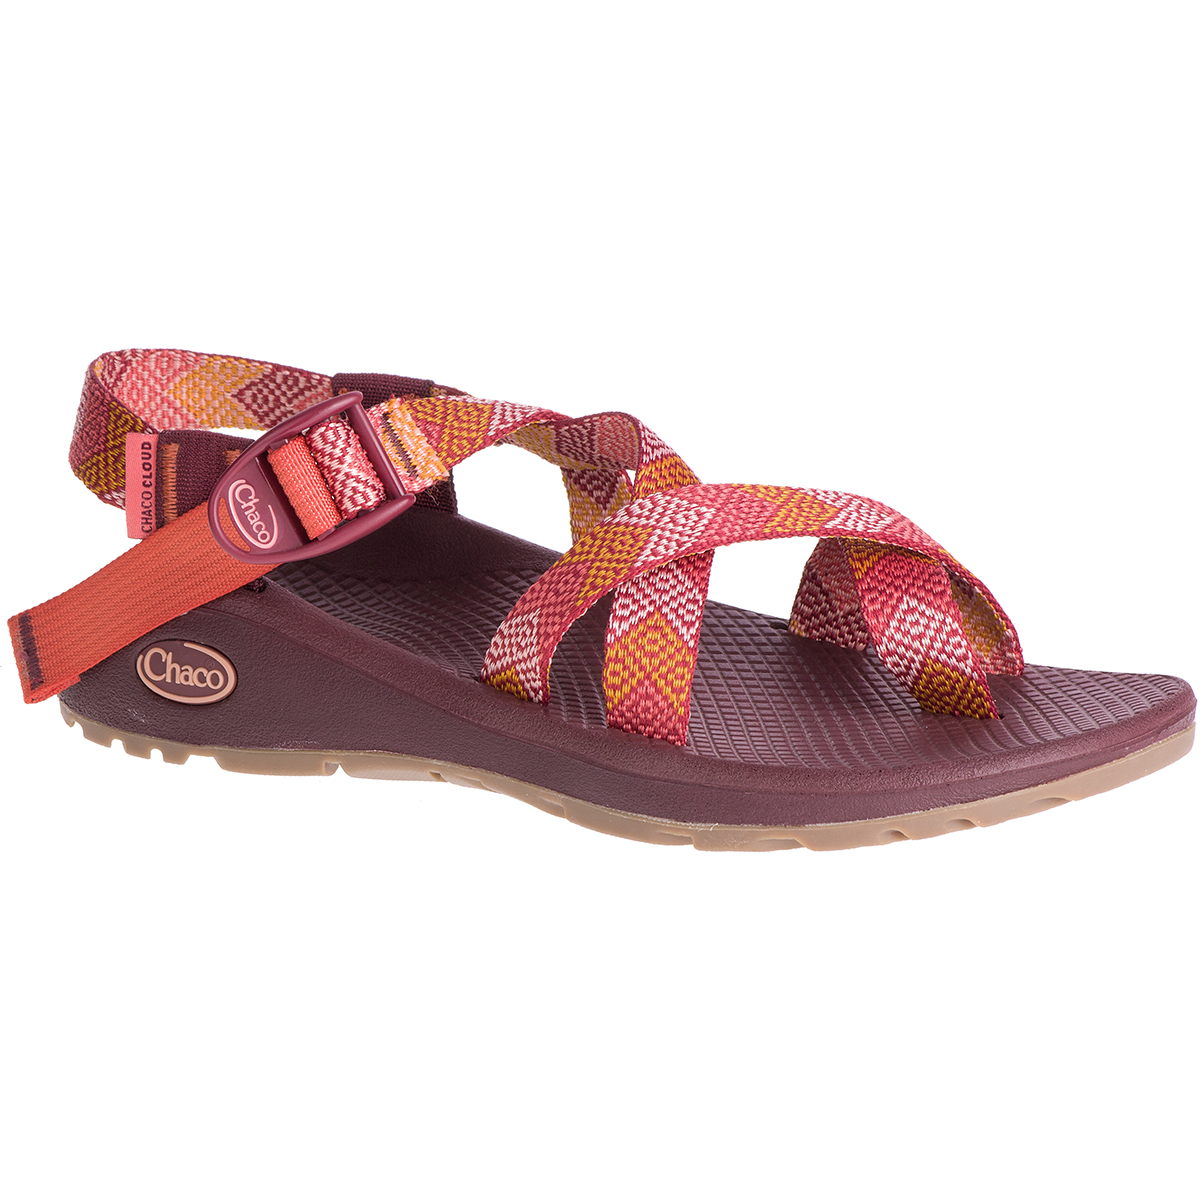 Chaco Women's Z/cloud 2 Sandals - Red, 10